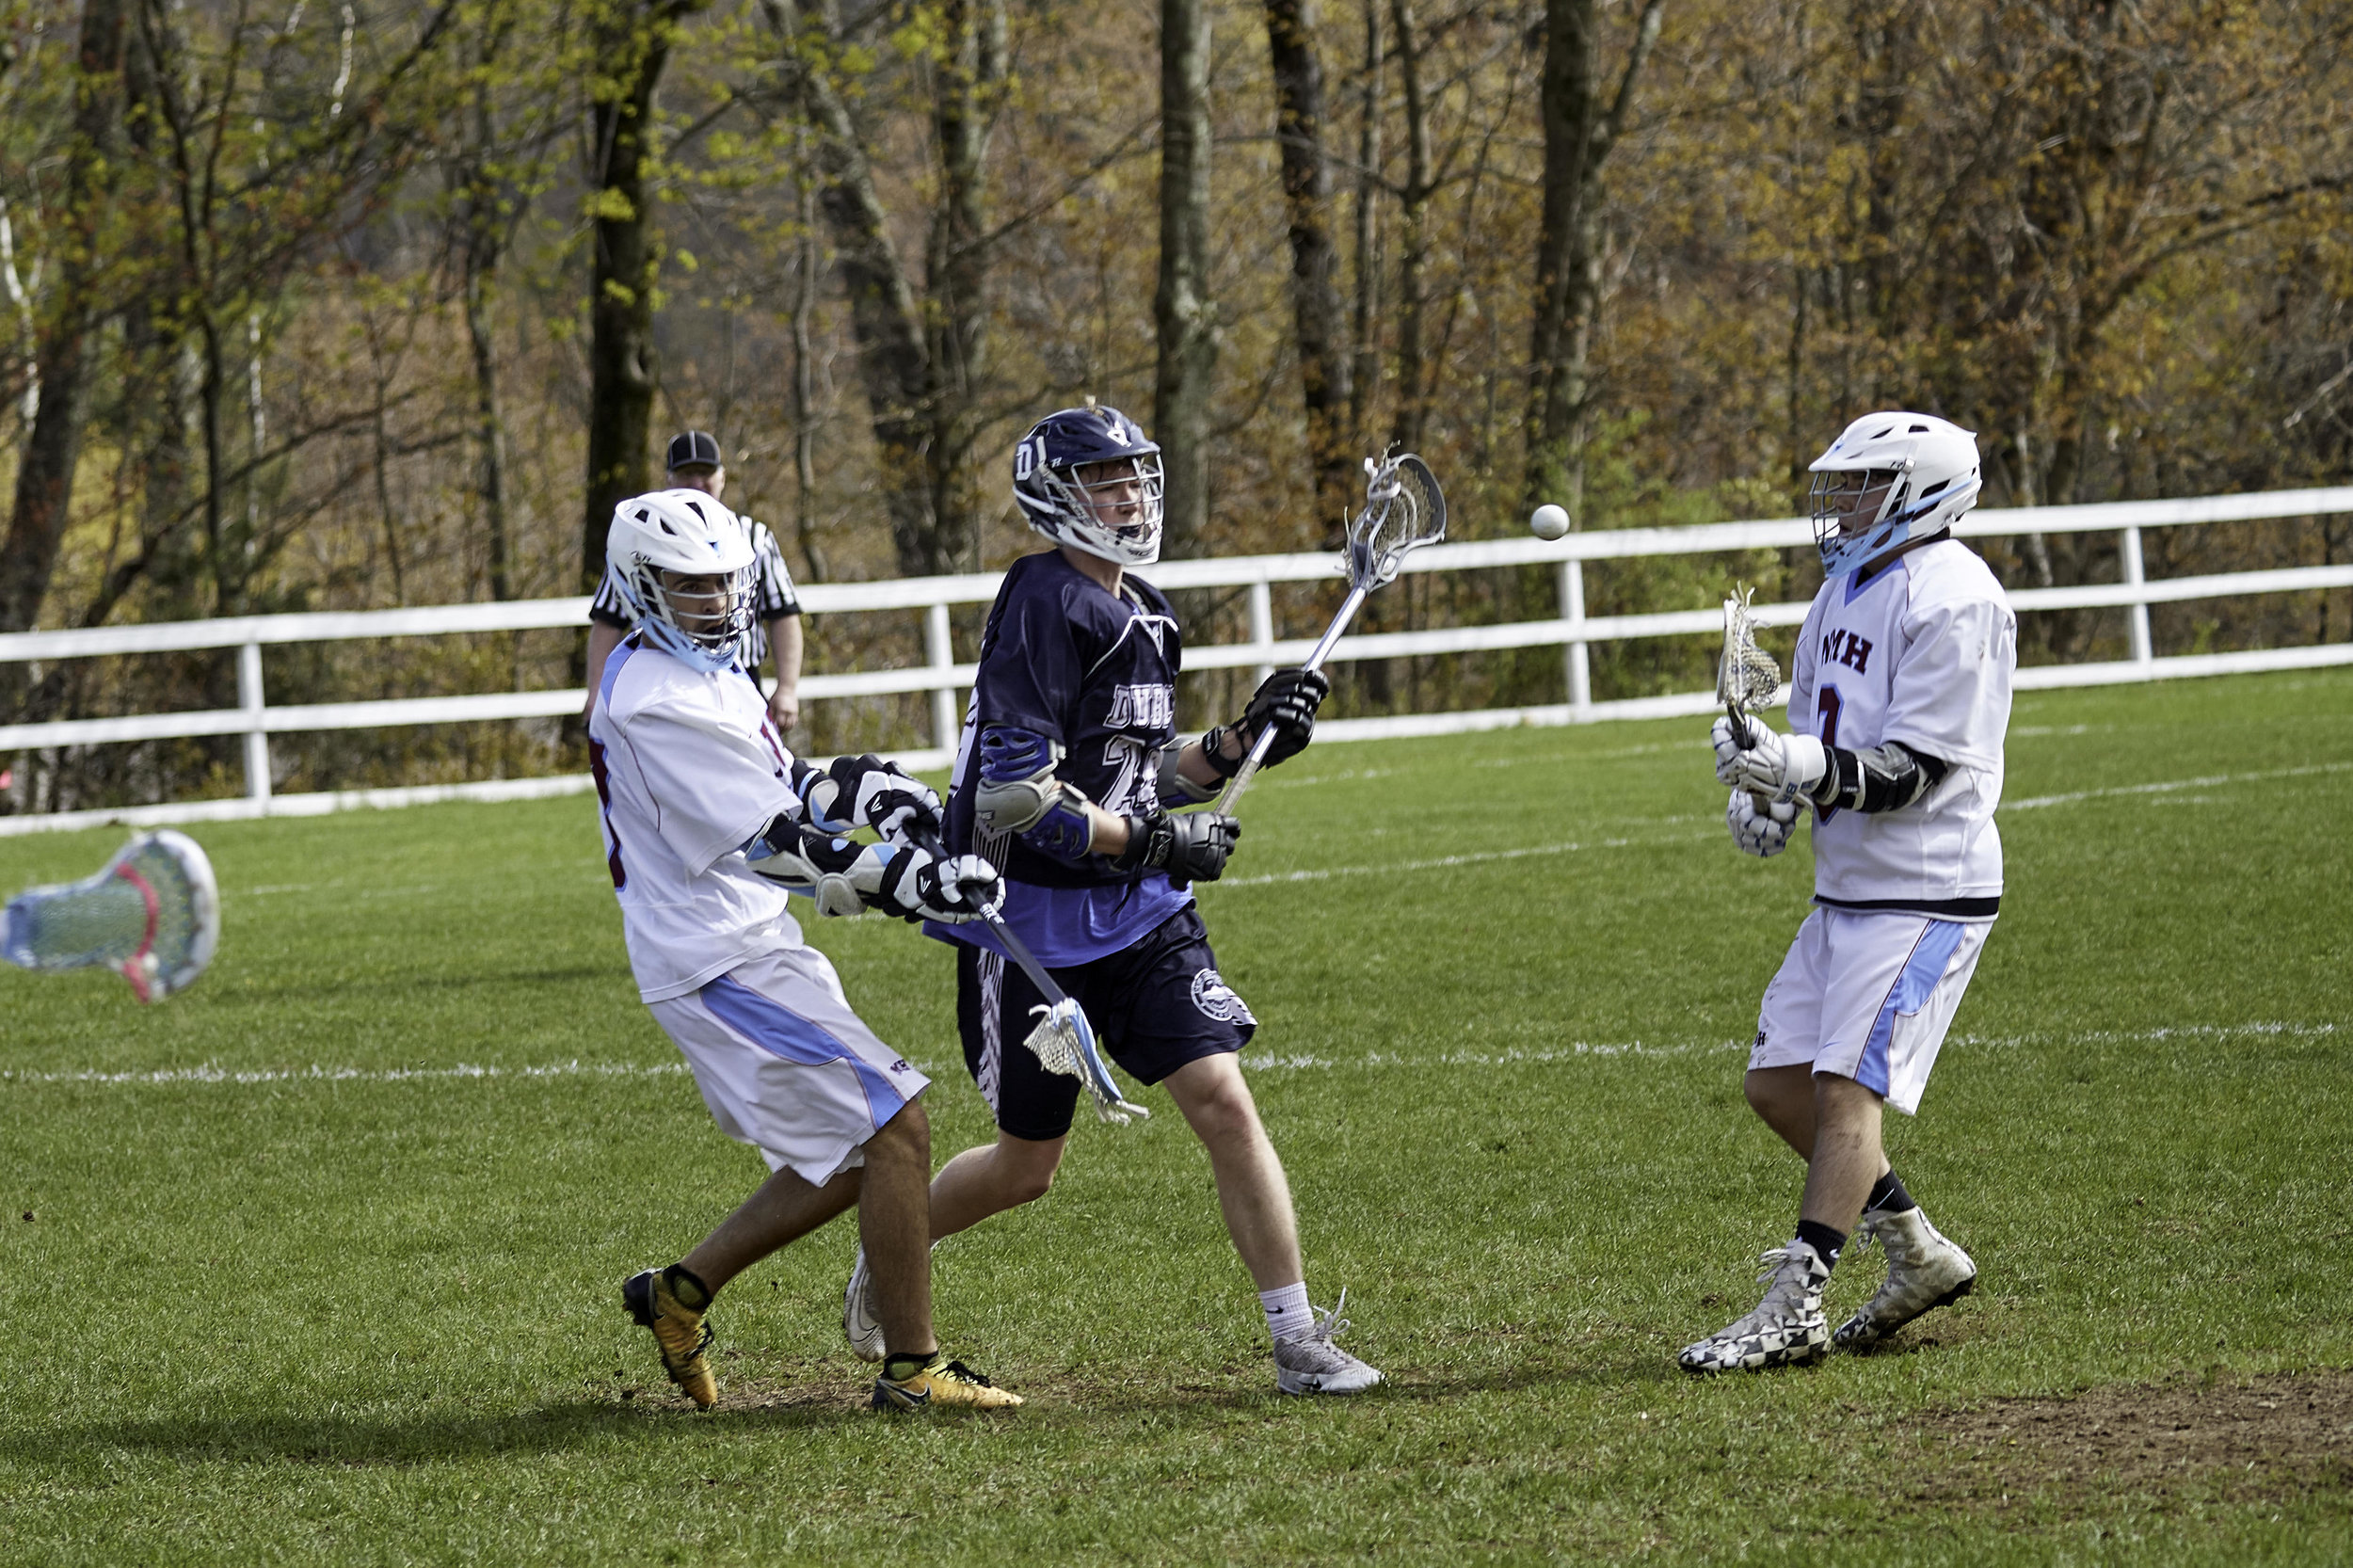 Boys Lax vs Northfield Mount Hermon JV - May 15 2019 - 0016.jpg